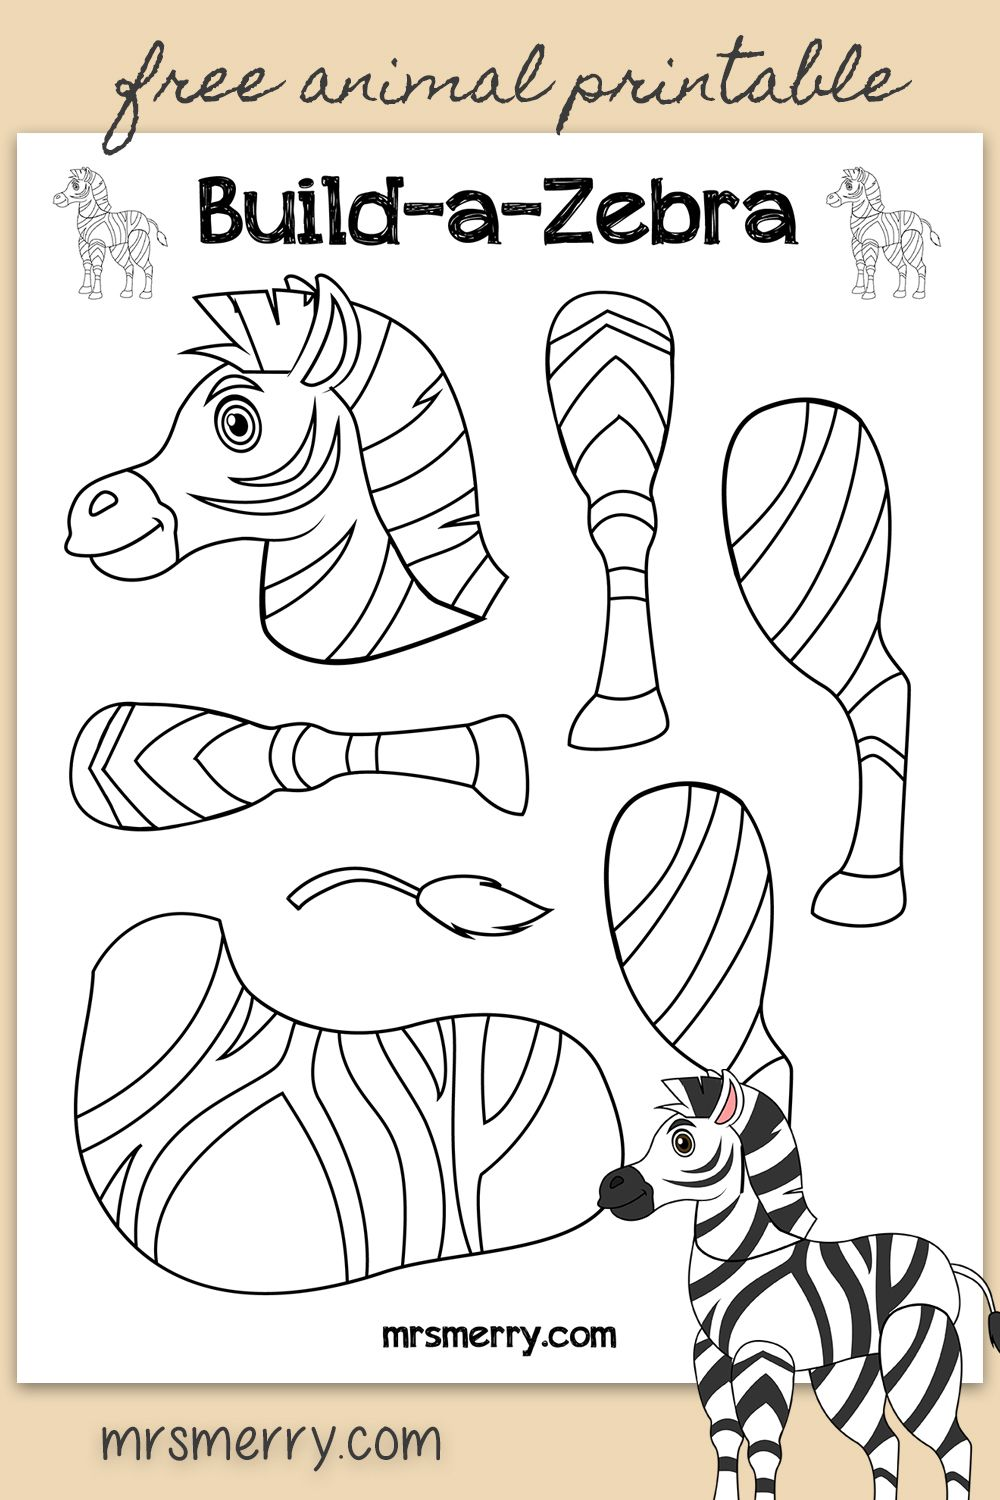 120 Free Printable Build A Ideas In 2021 Crafts For Kids Printables Free Kids Printables Kids